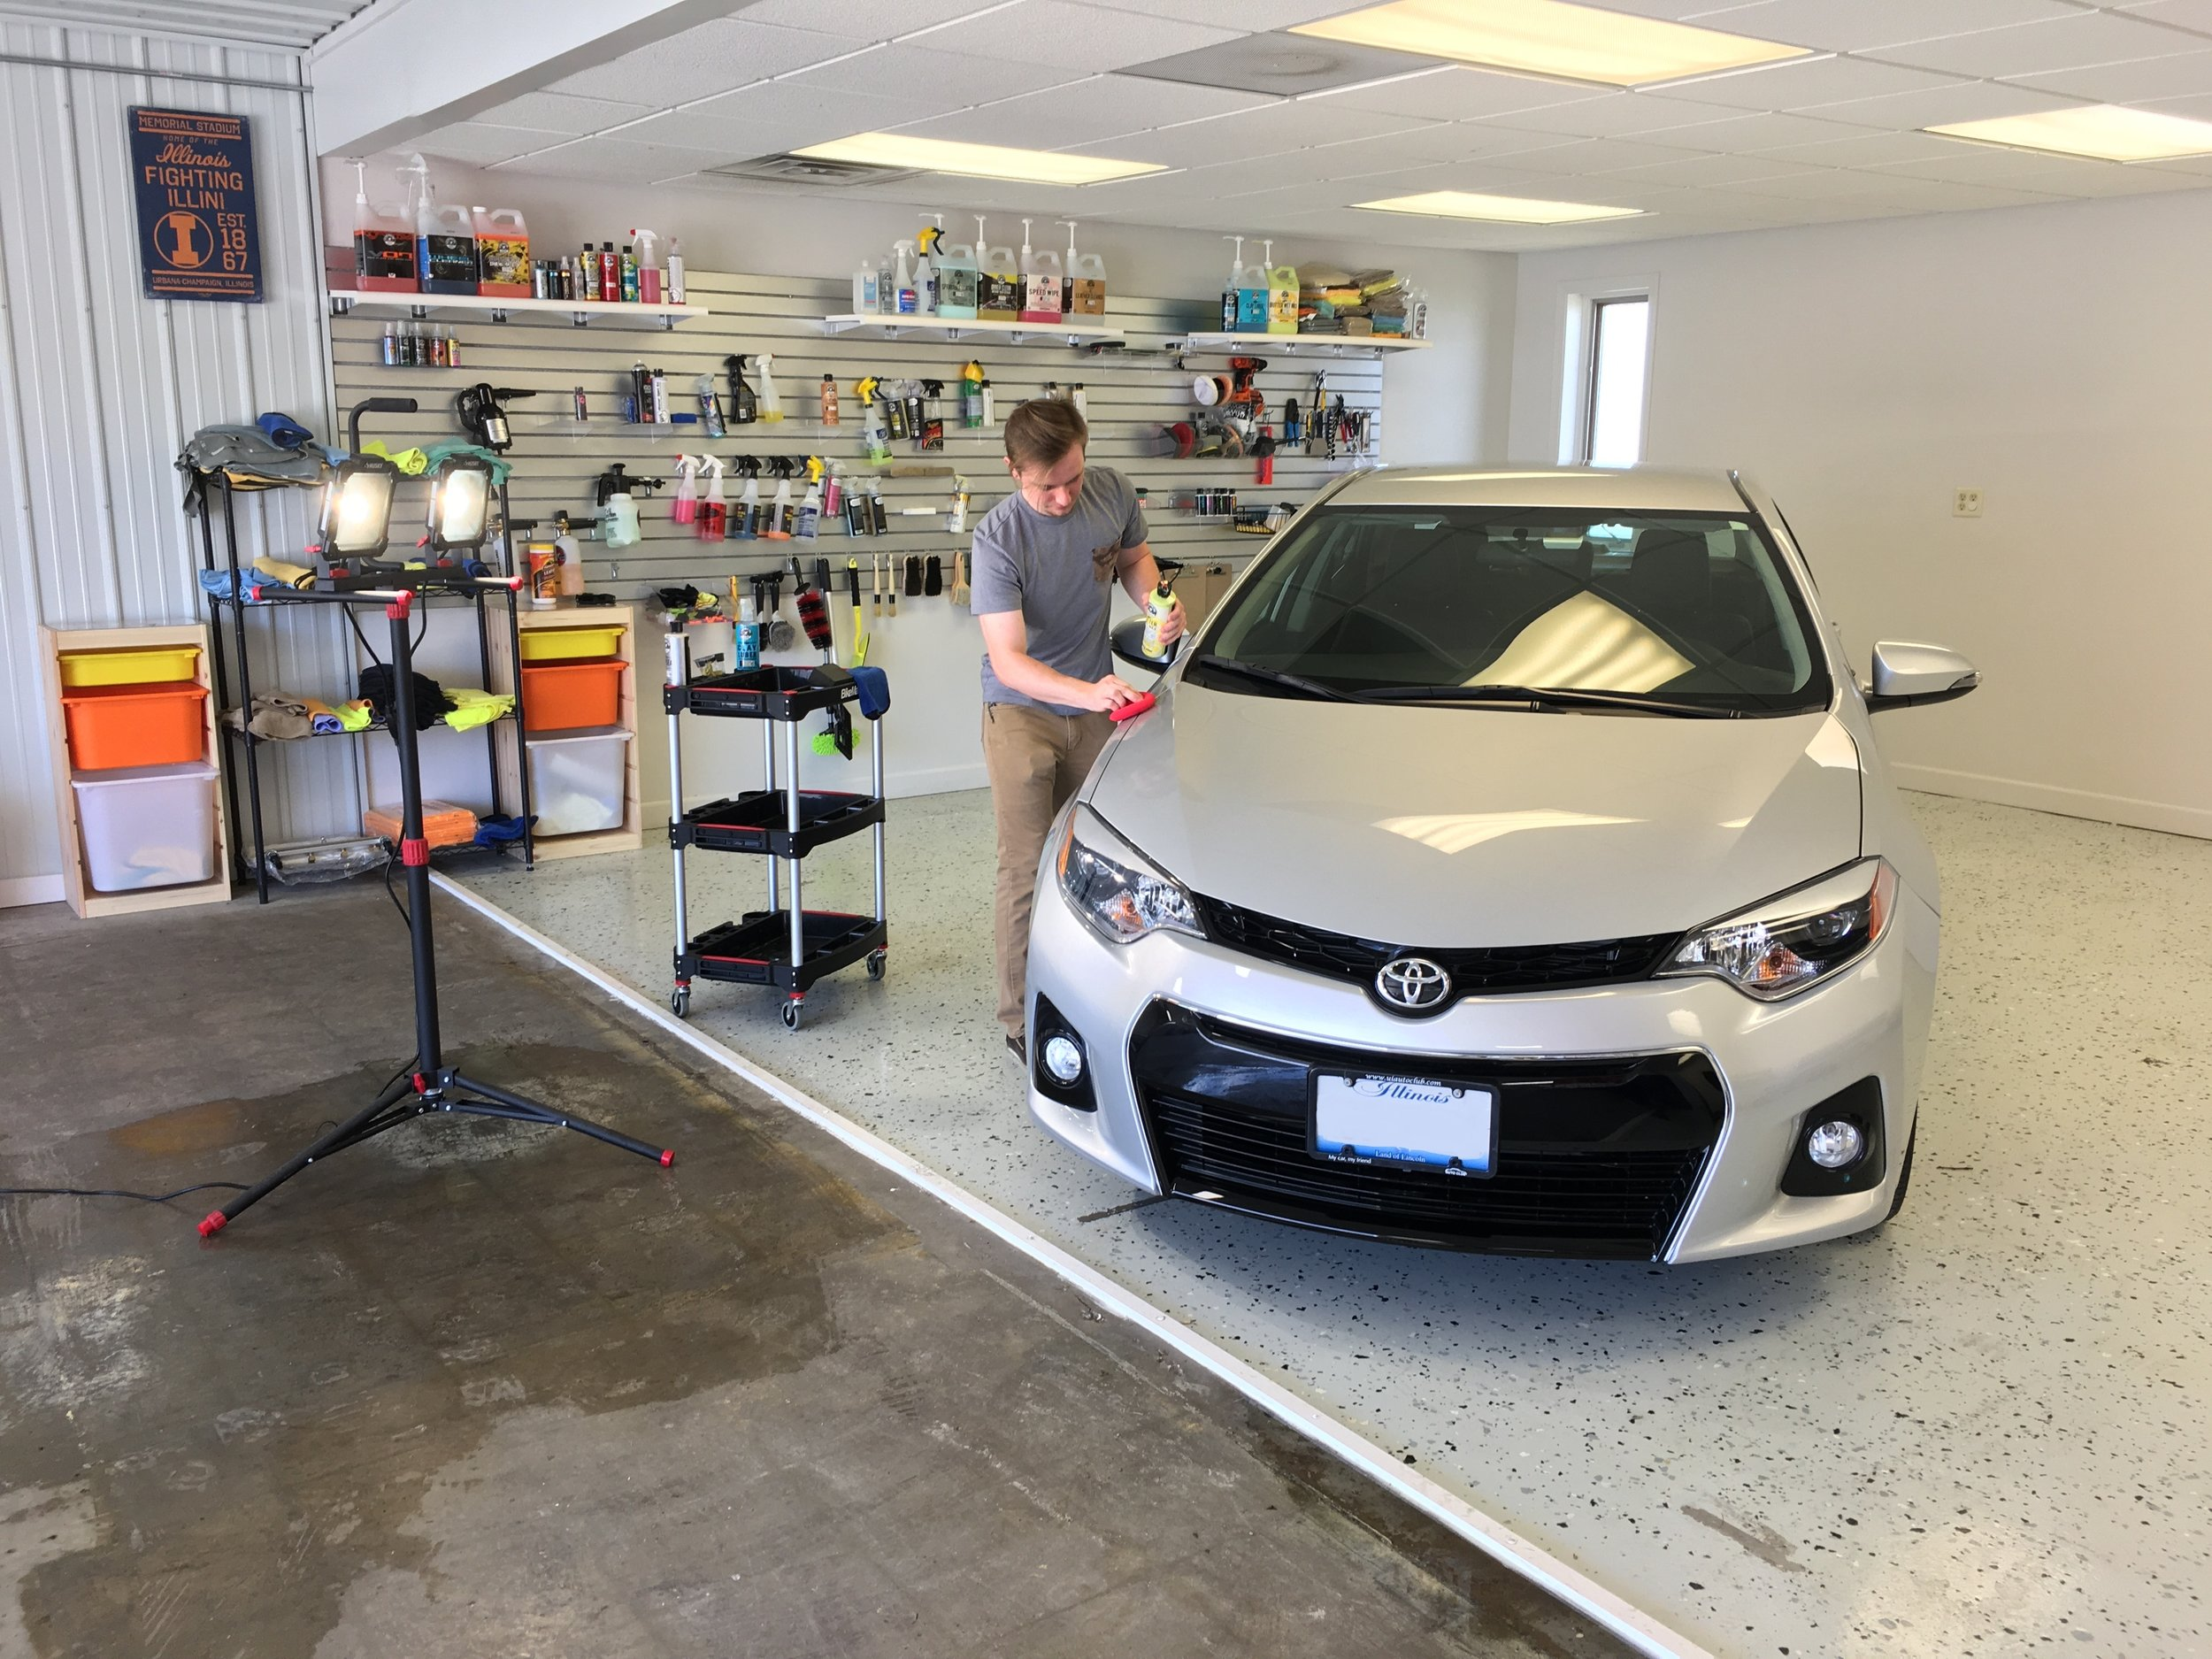 Kyle puts the finishing touches on a customer car